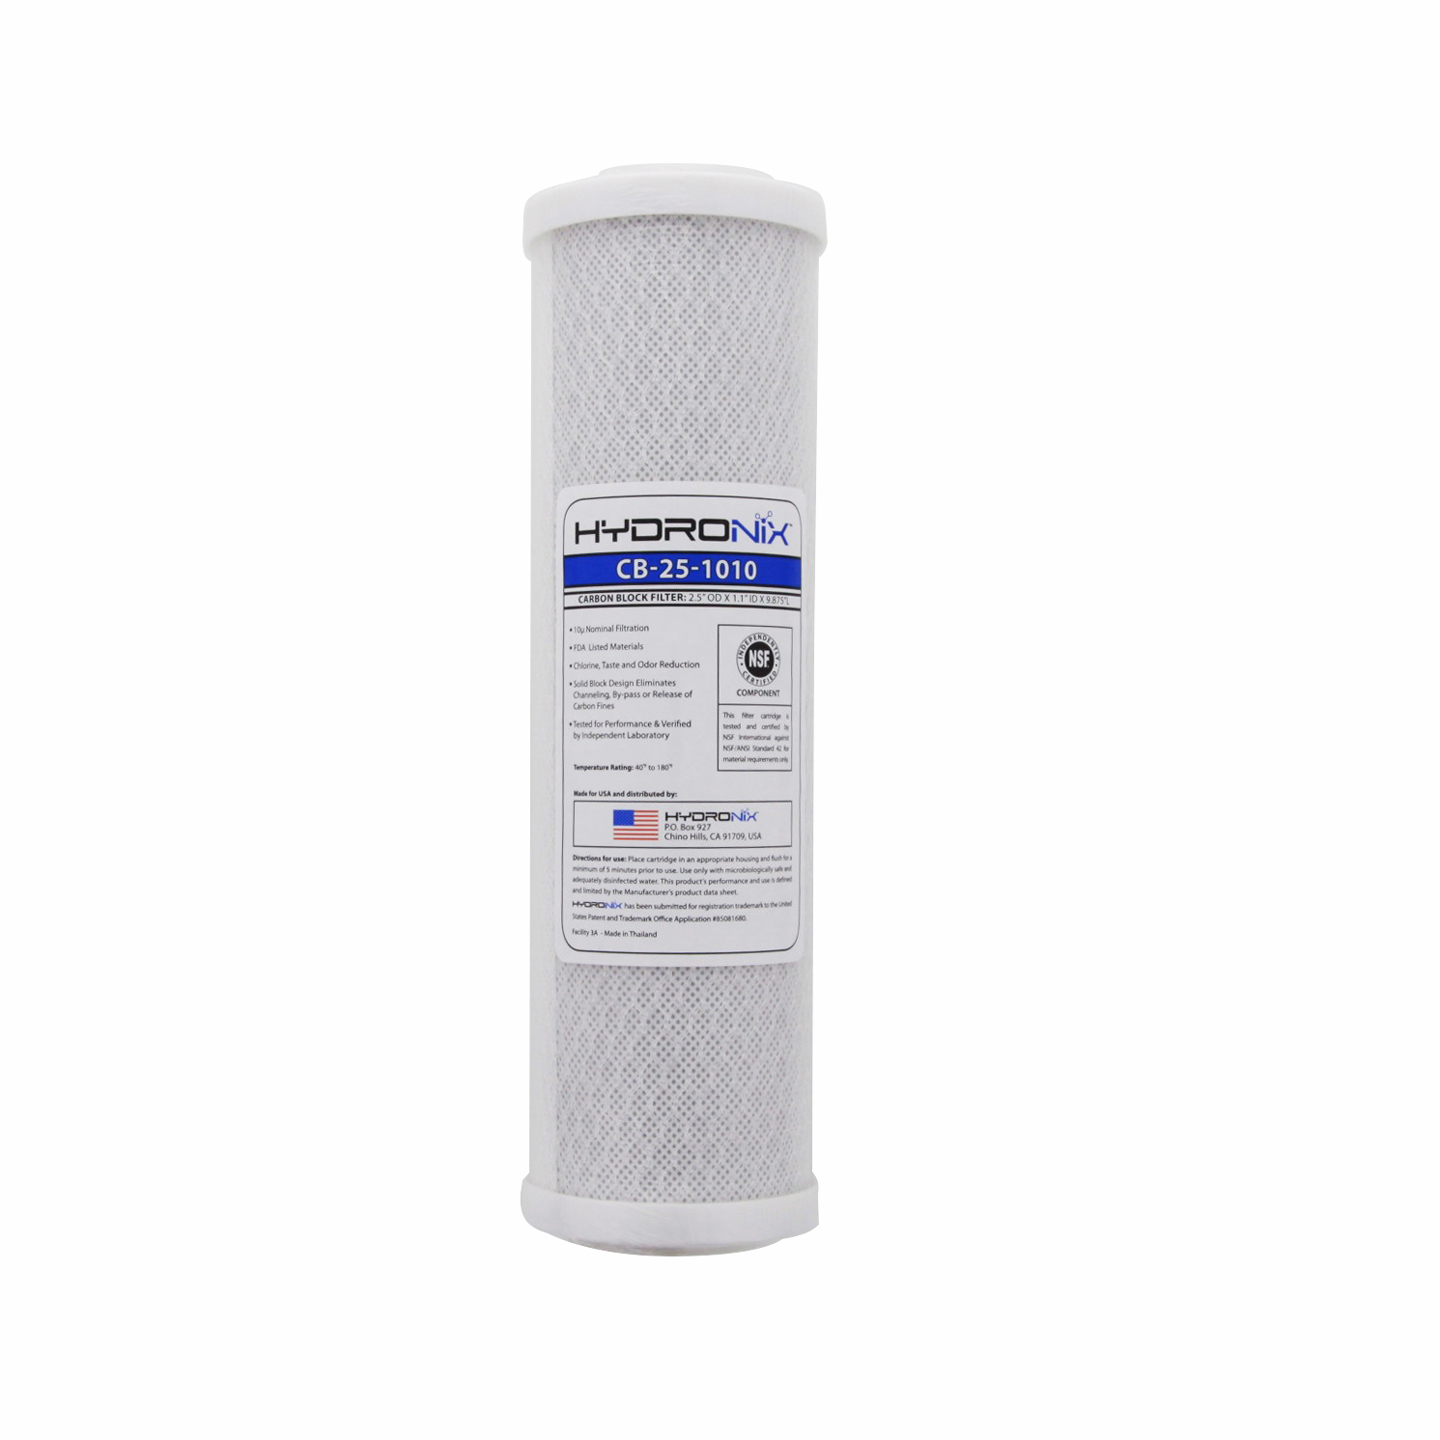 CB-25-1010 Hydronix Carbon Water Filter Replacement HYDRONIX-CB-25-1010